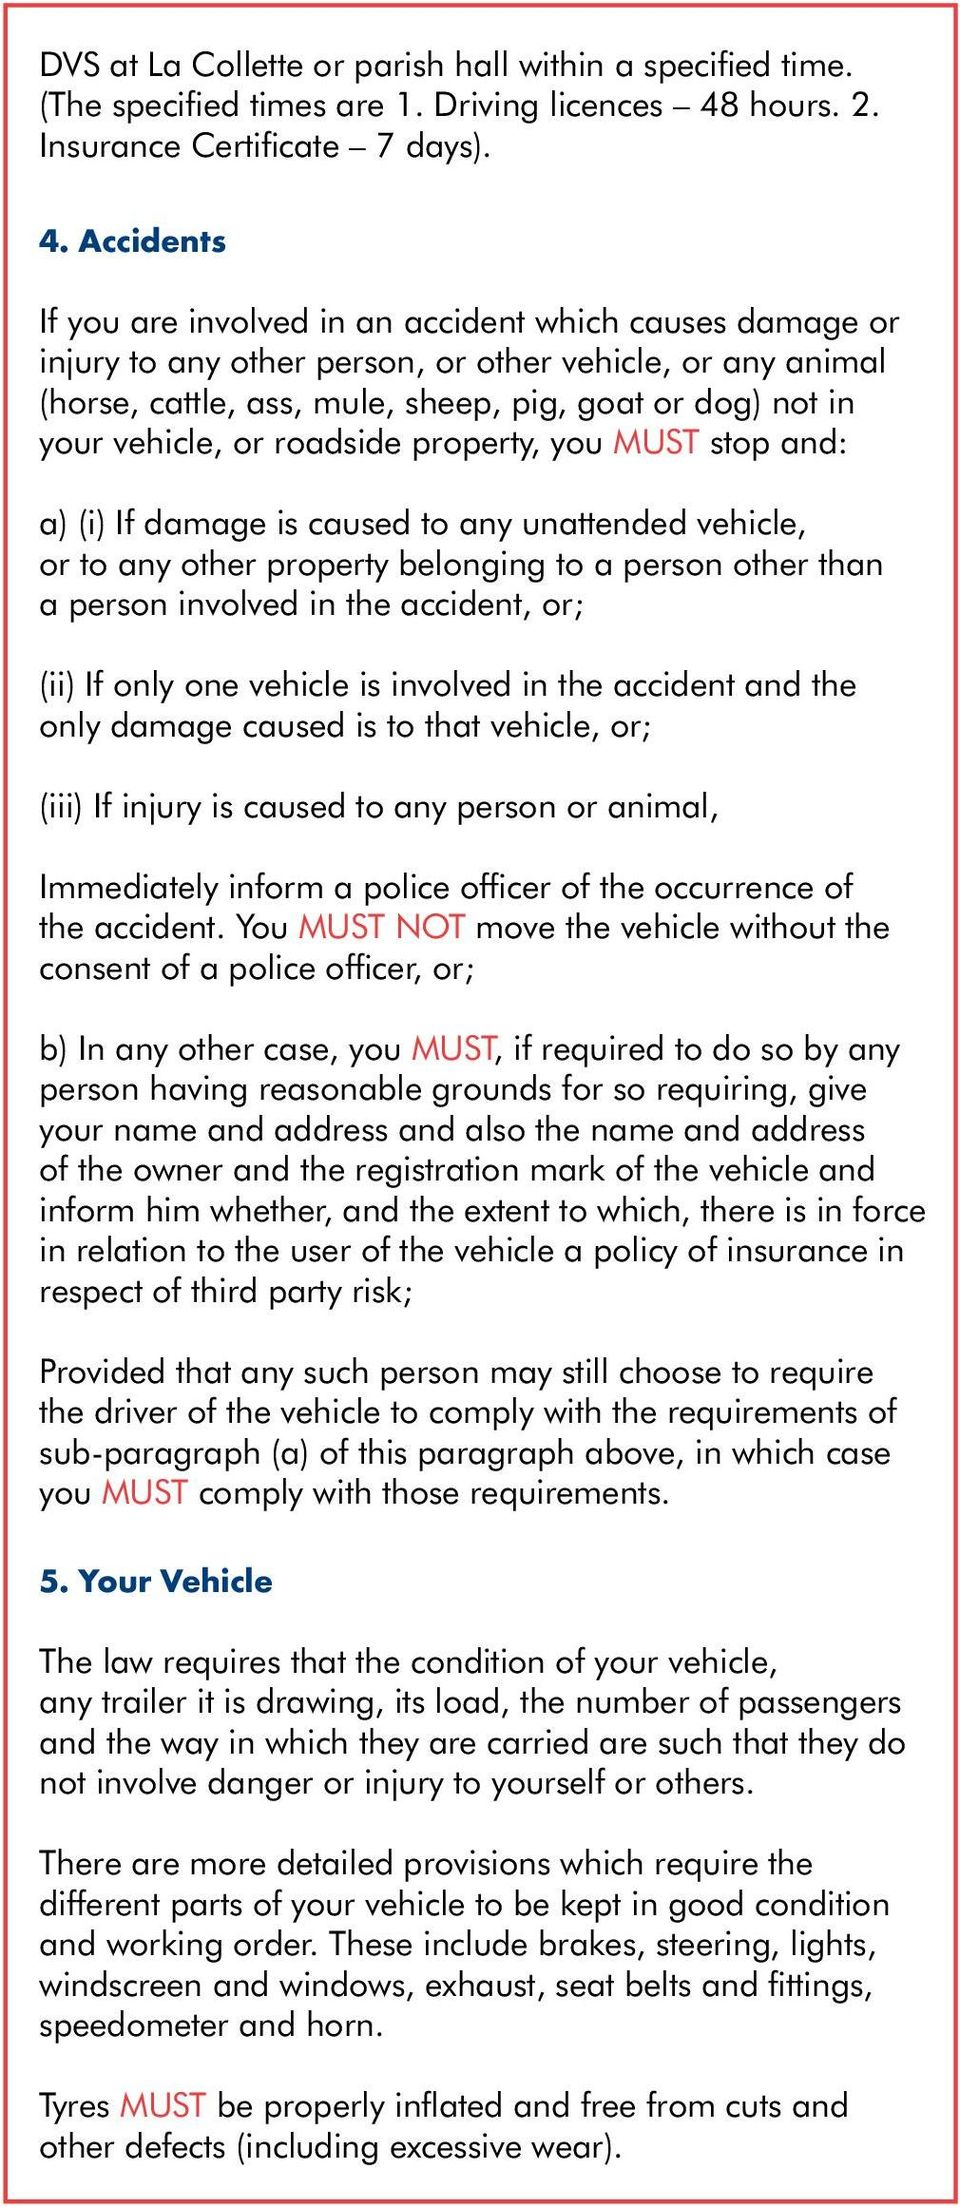 Accidents If you are involved in an accident which causes damage or injury to any other person, or other vehicle, or any animal (horse, cattle, ass, mule, sheep, pig, goat or dog) not in your